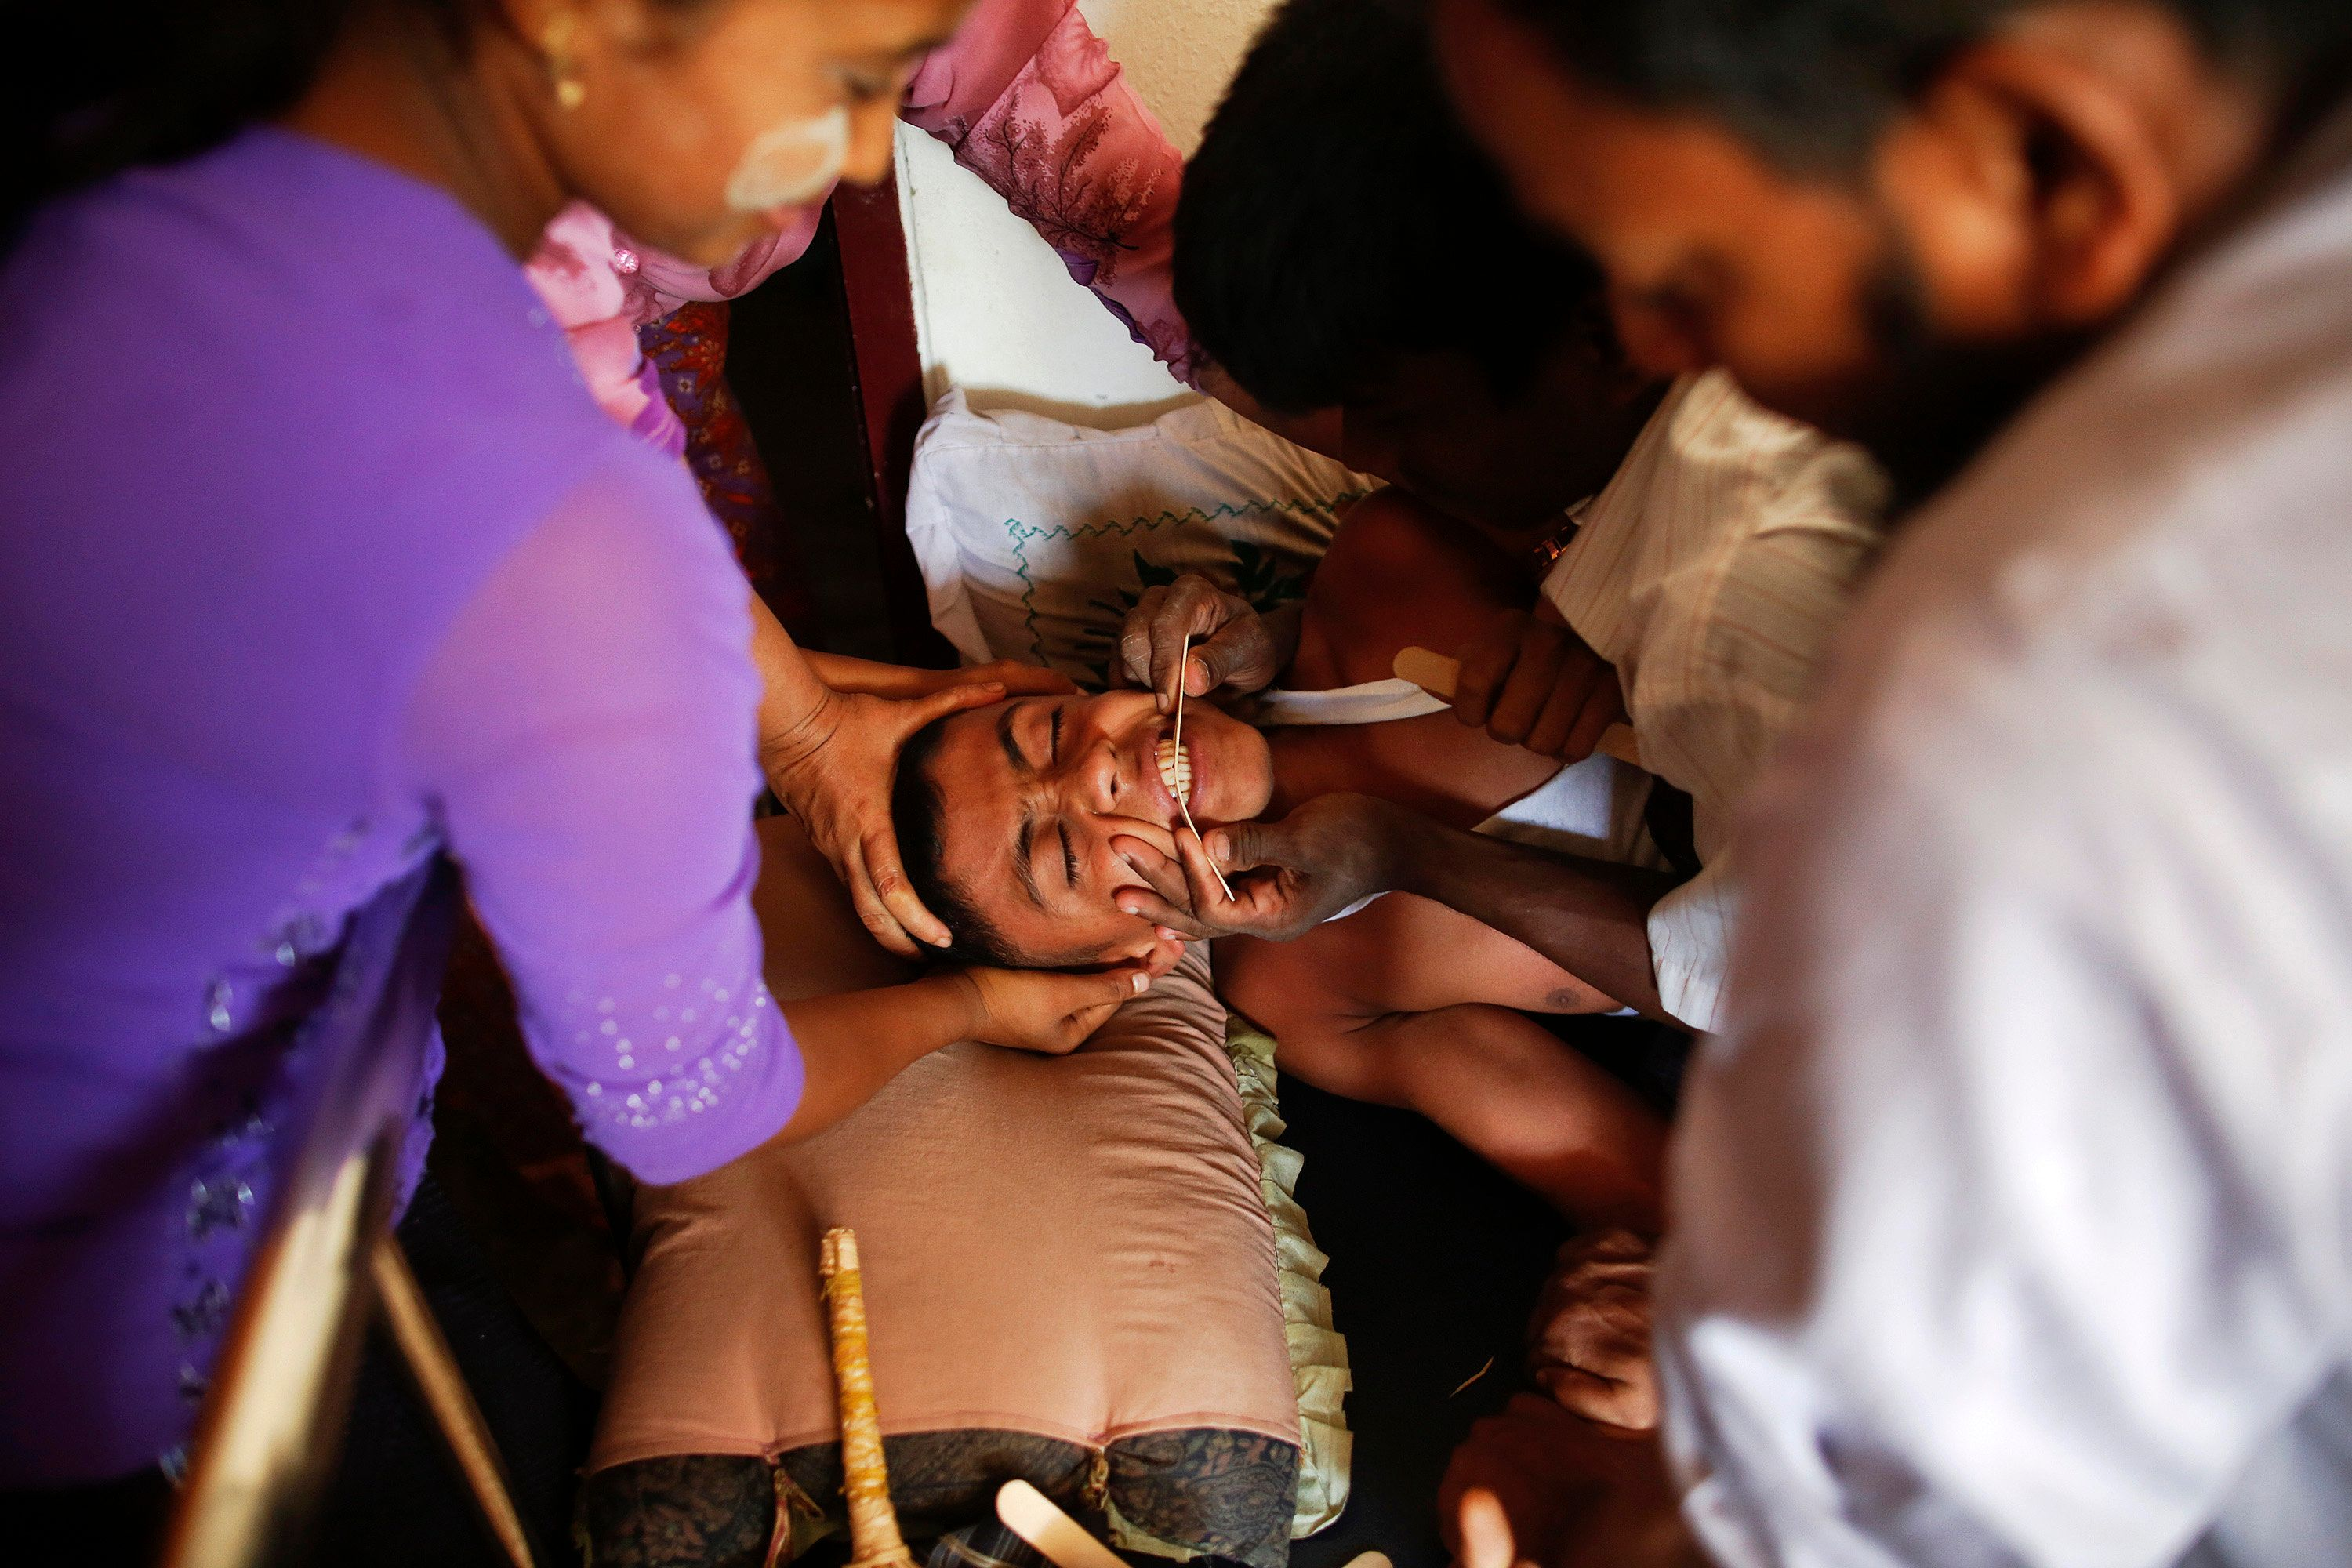 Wadulae, a 16-year-old Rohingya Muslim boy with severe symptoms of rabies, is comforted by family members at a local clinic at a camp for people displaced by violence near Sittwe April 29, 2013. Wadulae was bitten on the leg by a dog on April 6, and clinic officials say he has a slim chance of surviving. The boy failed to receive early treatment as none was available at the hospital. Myanmar authorities have begun segregating minority Muslims from the Buddhist majority in troubled areas of a country in transition. Picture taken April 29, 2013. To match Special Report MYANMAR-ROHINGYA/ REUTERS/Damir Sagolj (MYANMAR - Tags: POLITICS HEALTH RELIGION TPX IMAGES OF THE DAY CONFLICT)